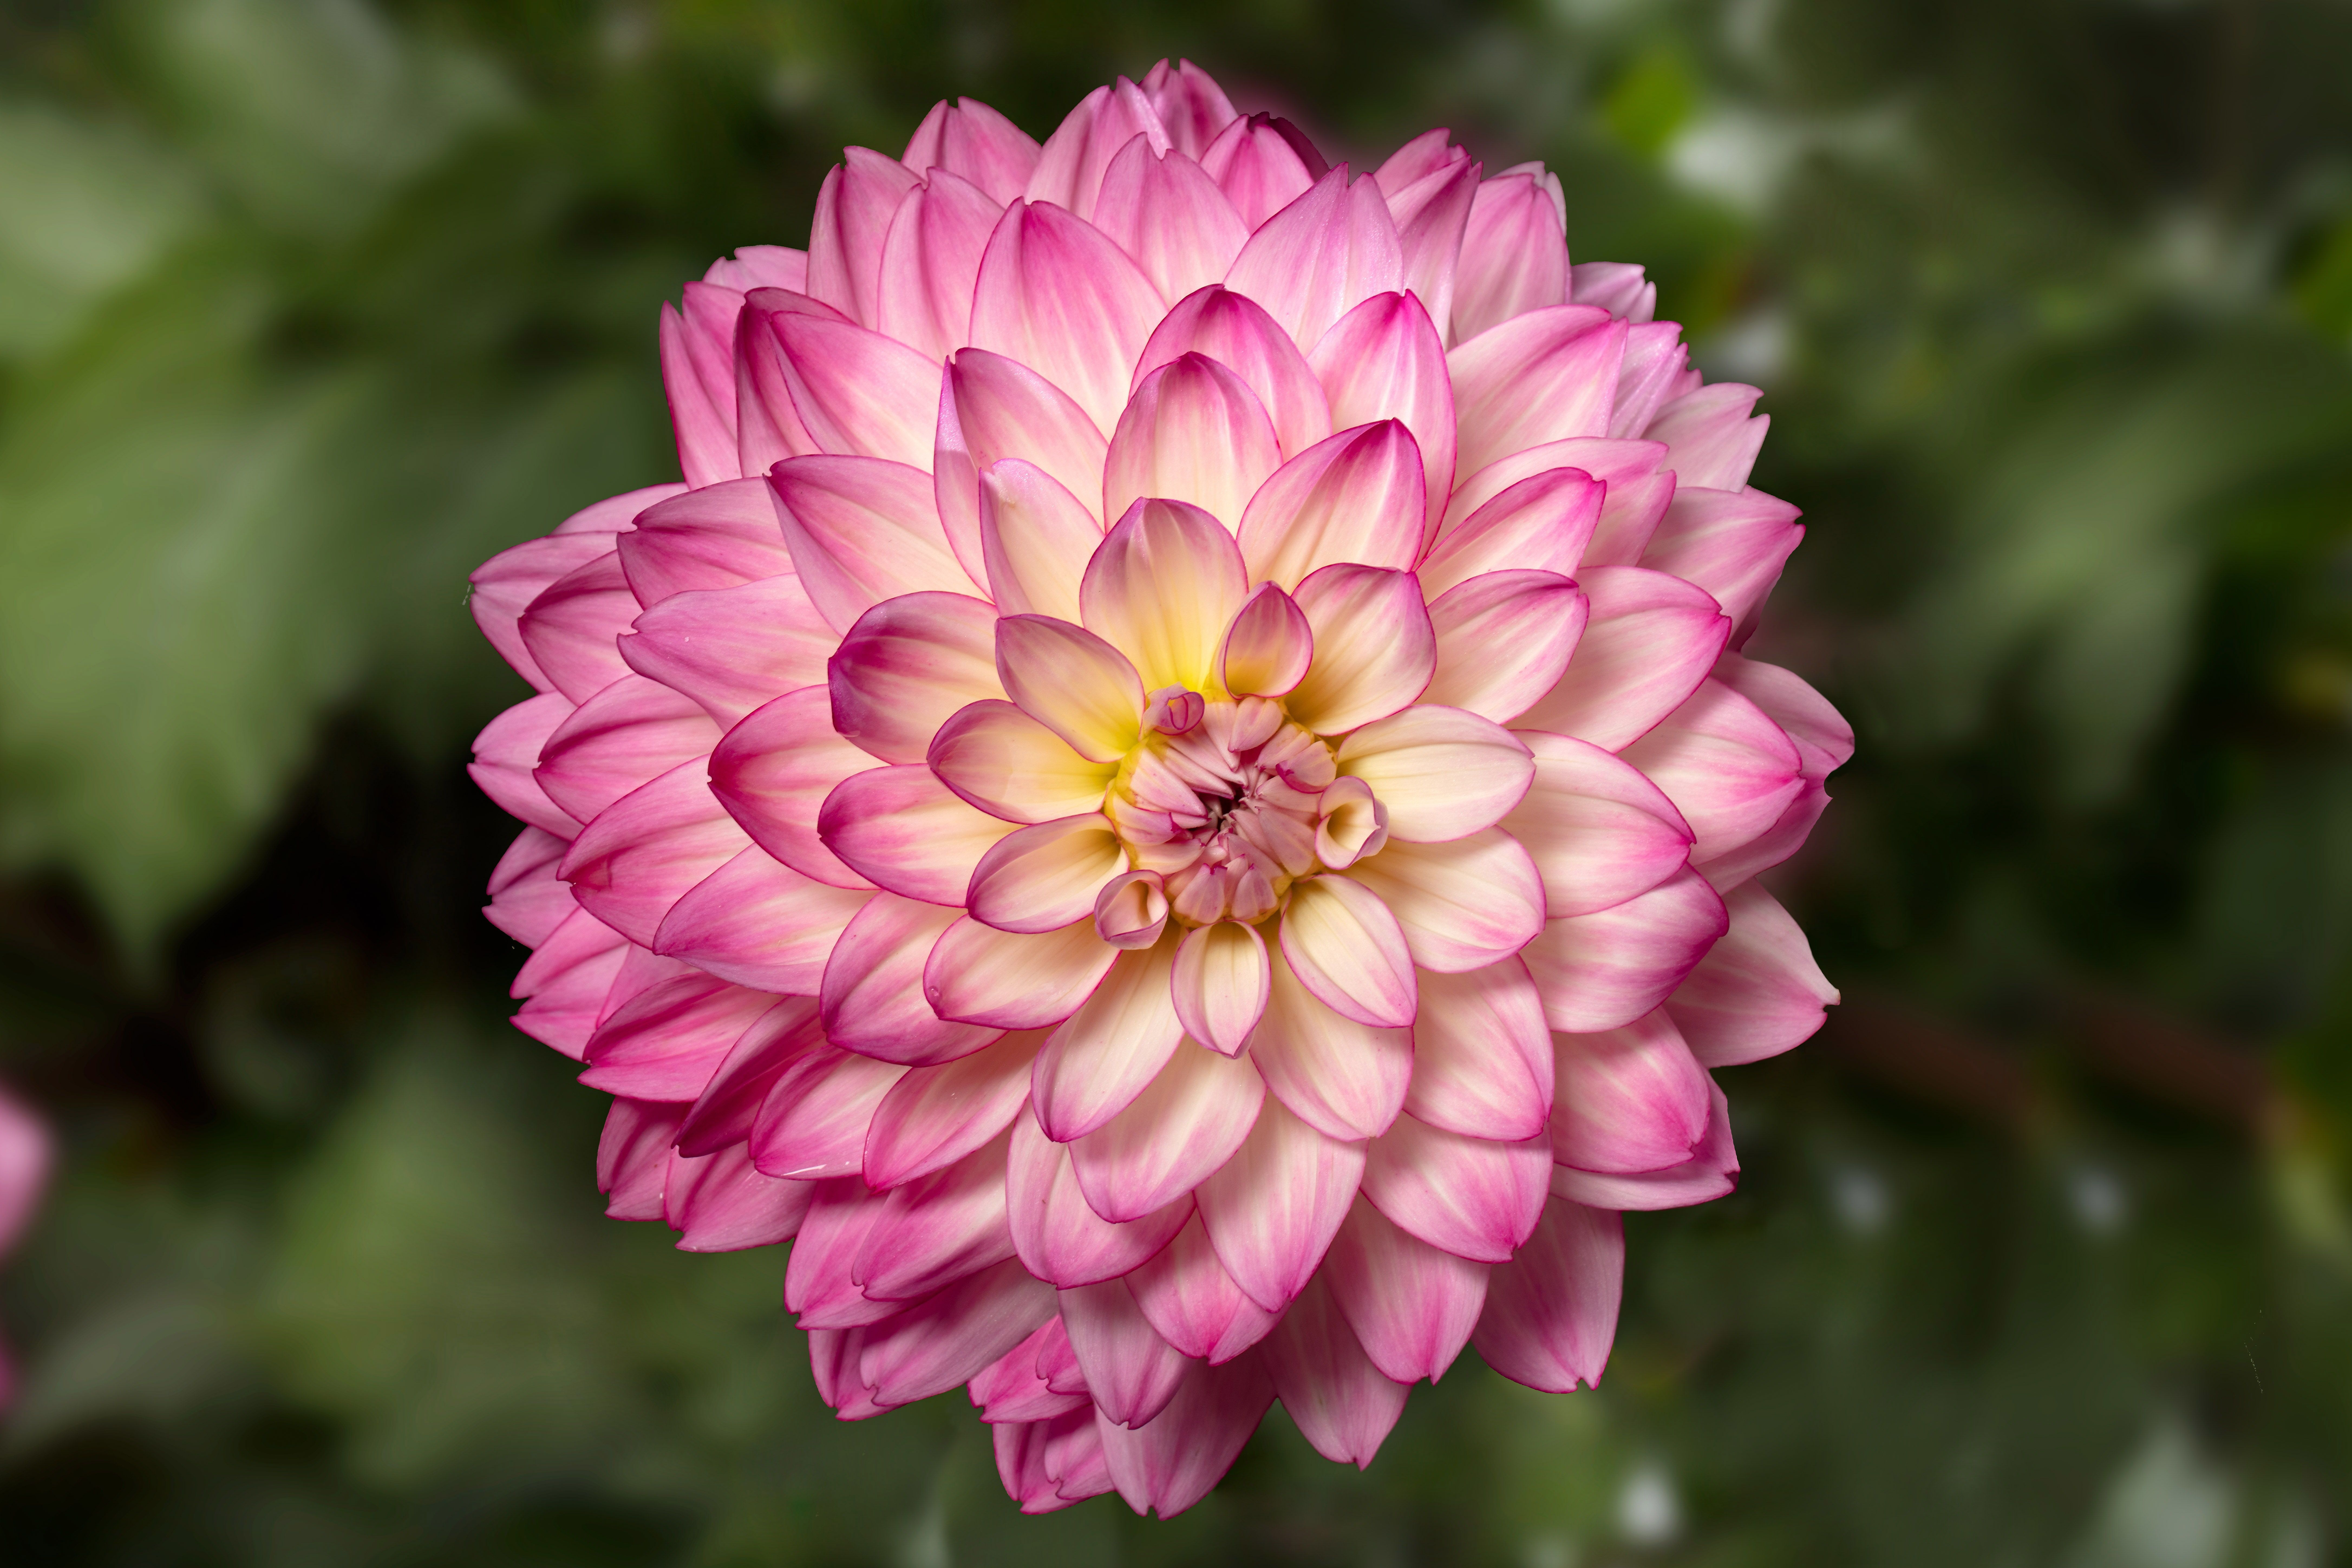 2019 Year Of The Dahlia National Garden Bureau How To Grow Dahlias In 2021 Growing Dahlias Bulb Flowers Amazing Flowers